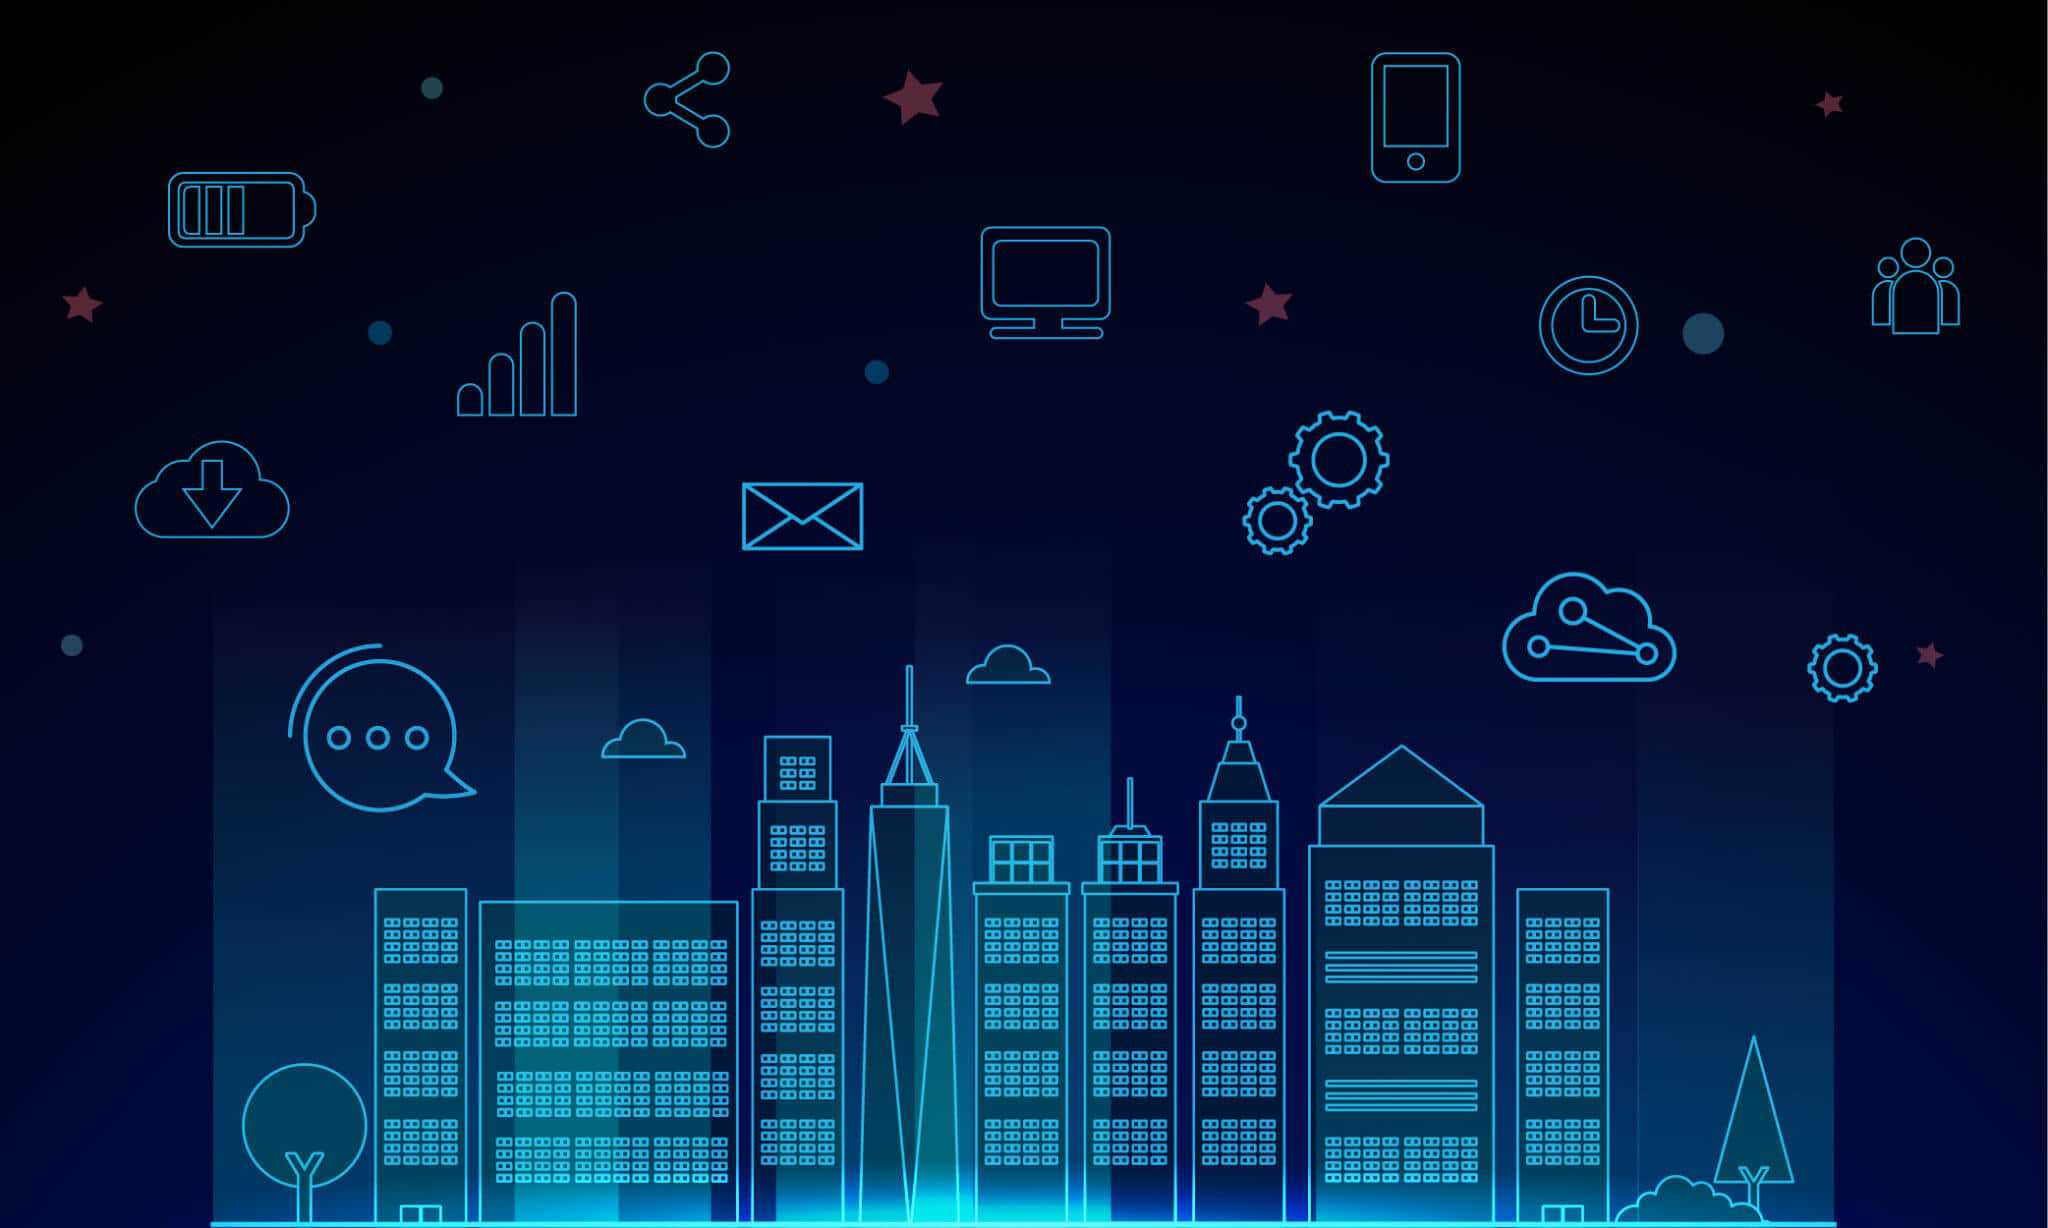 Technology Management Image: Digital Transformation 2019 And Beyond